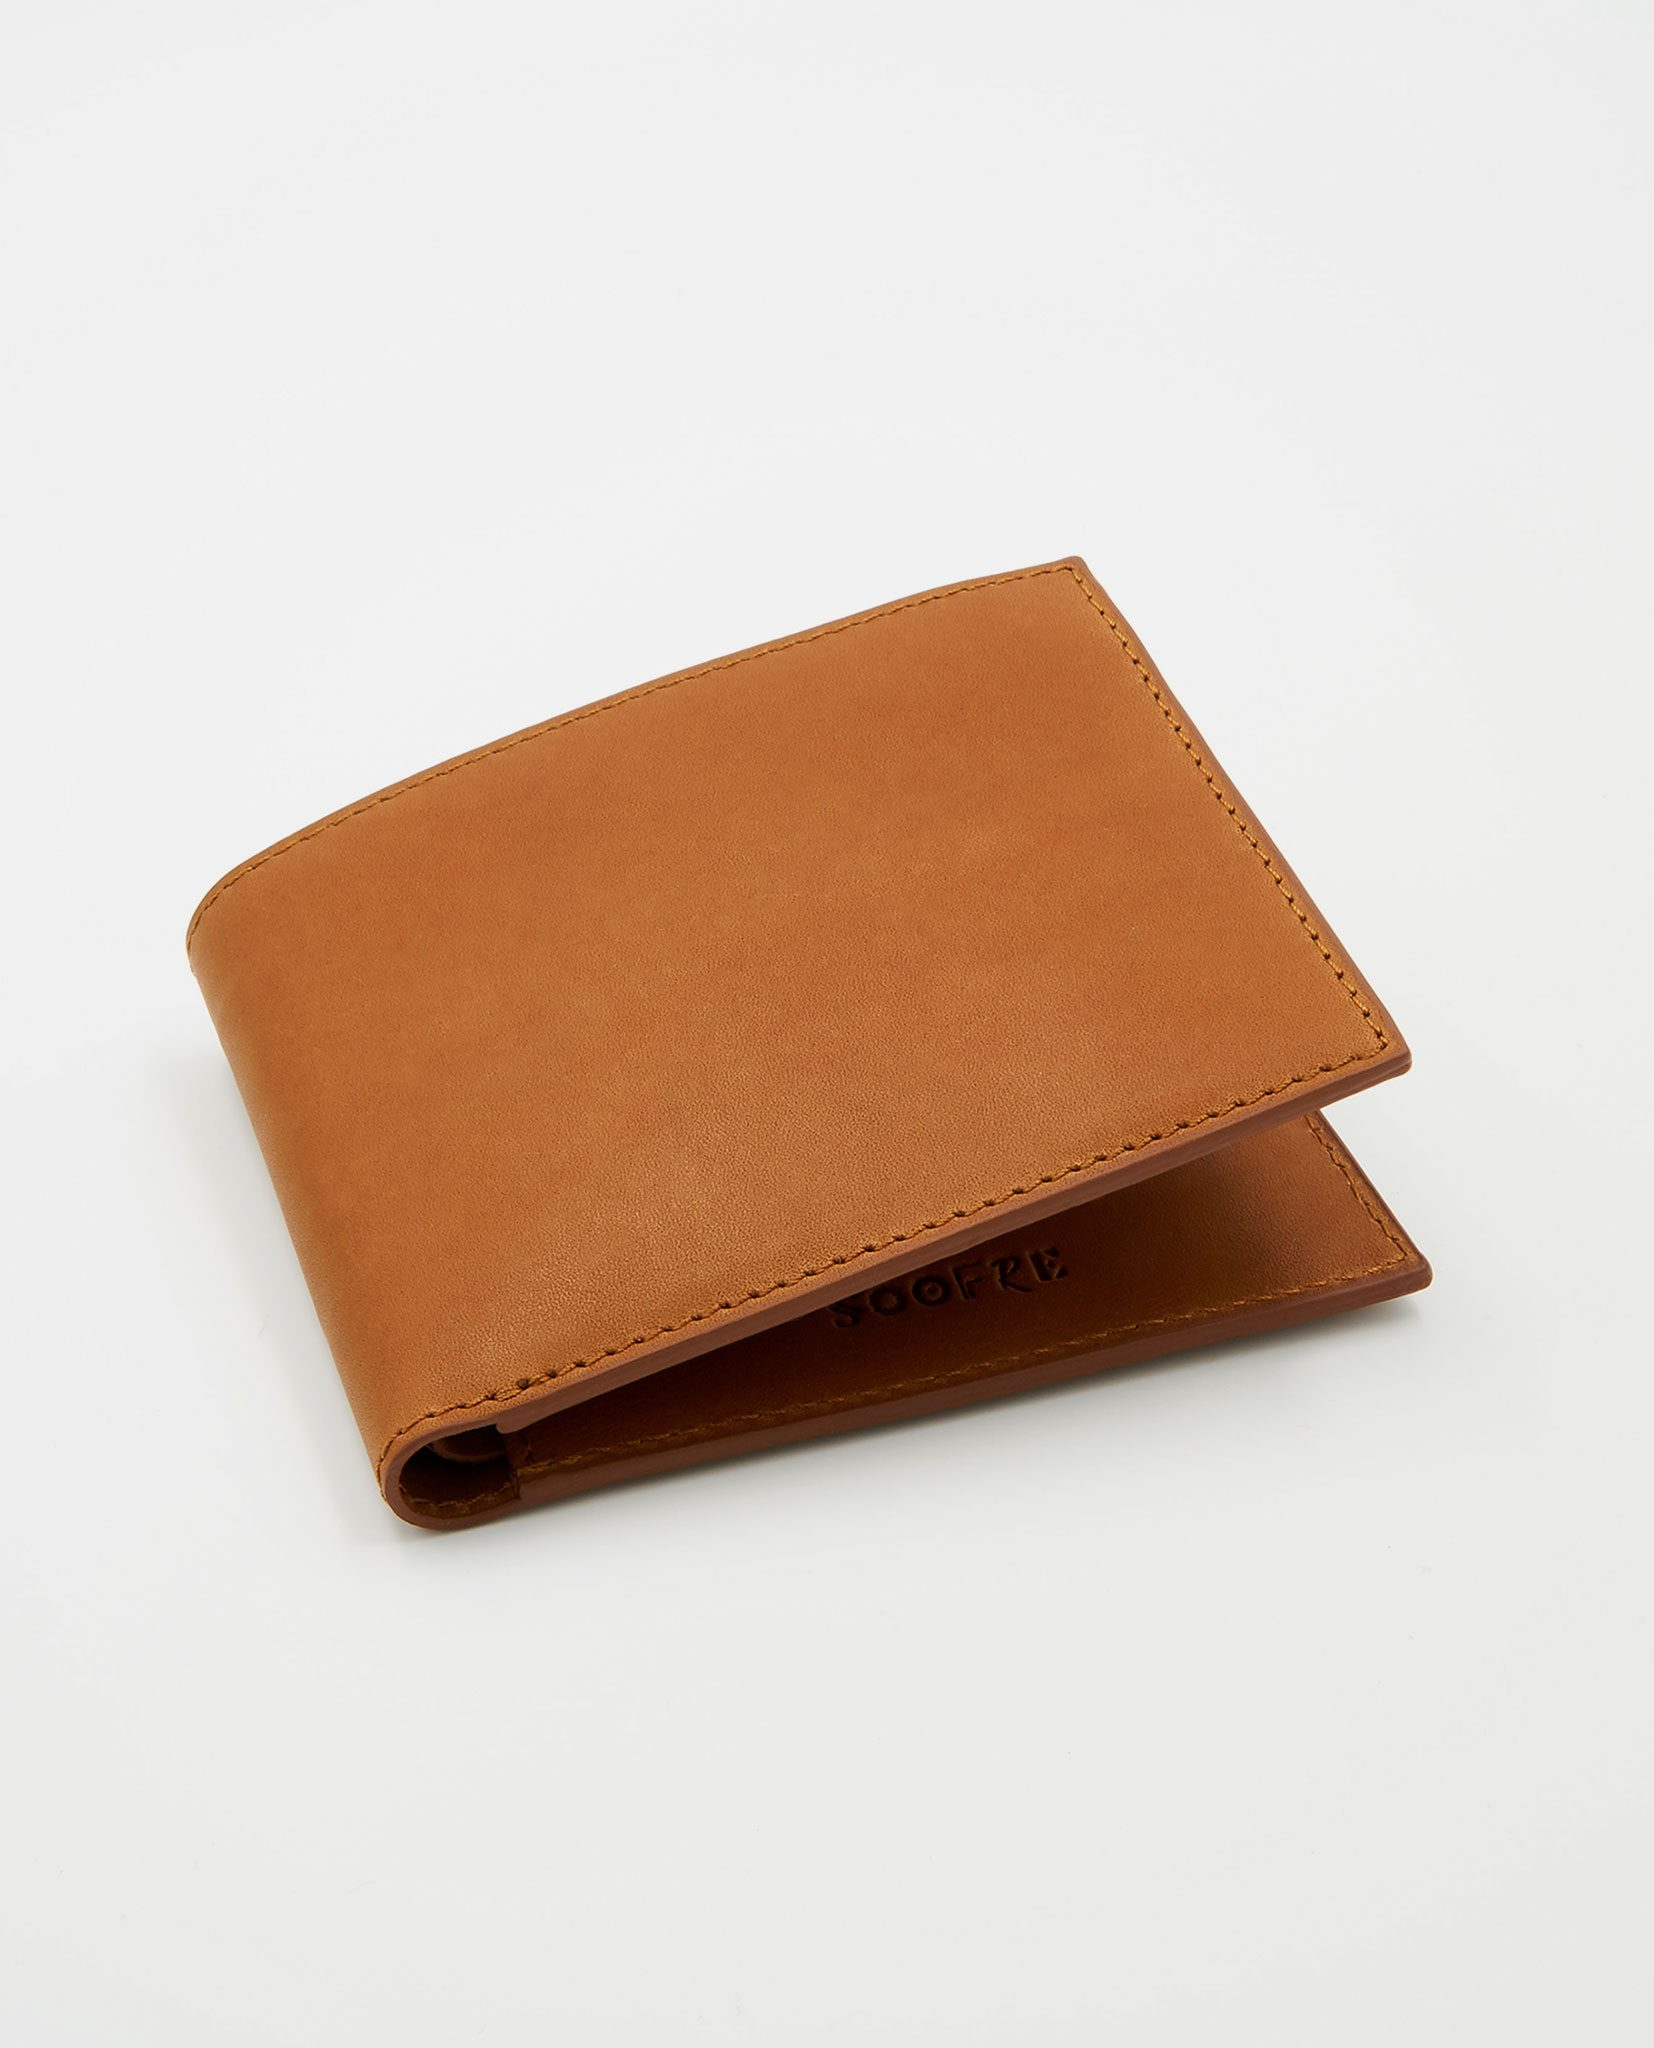 Soofre Men's Wallet Vegetable Tanned Leather tan